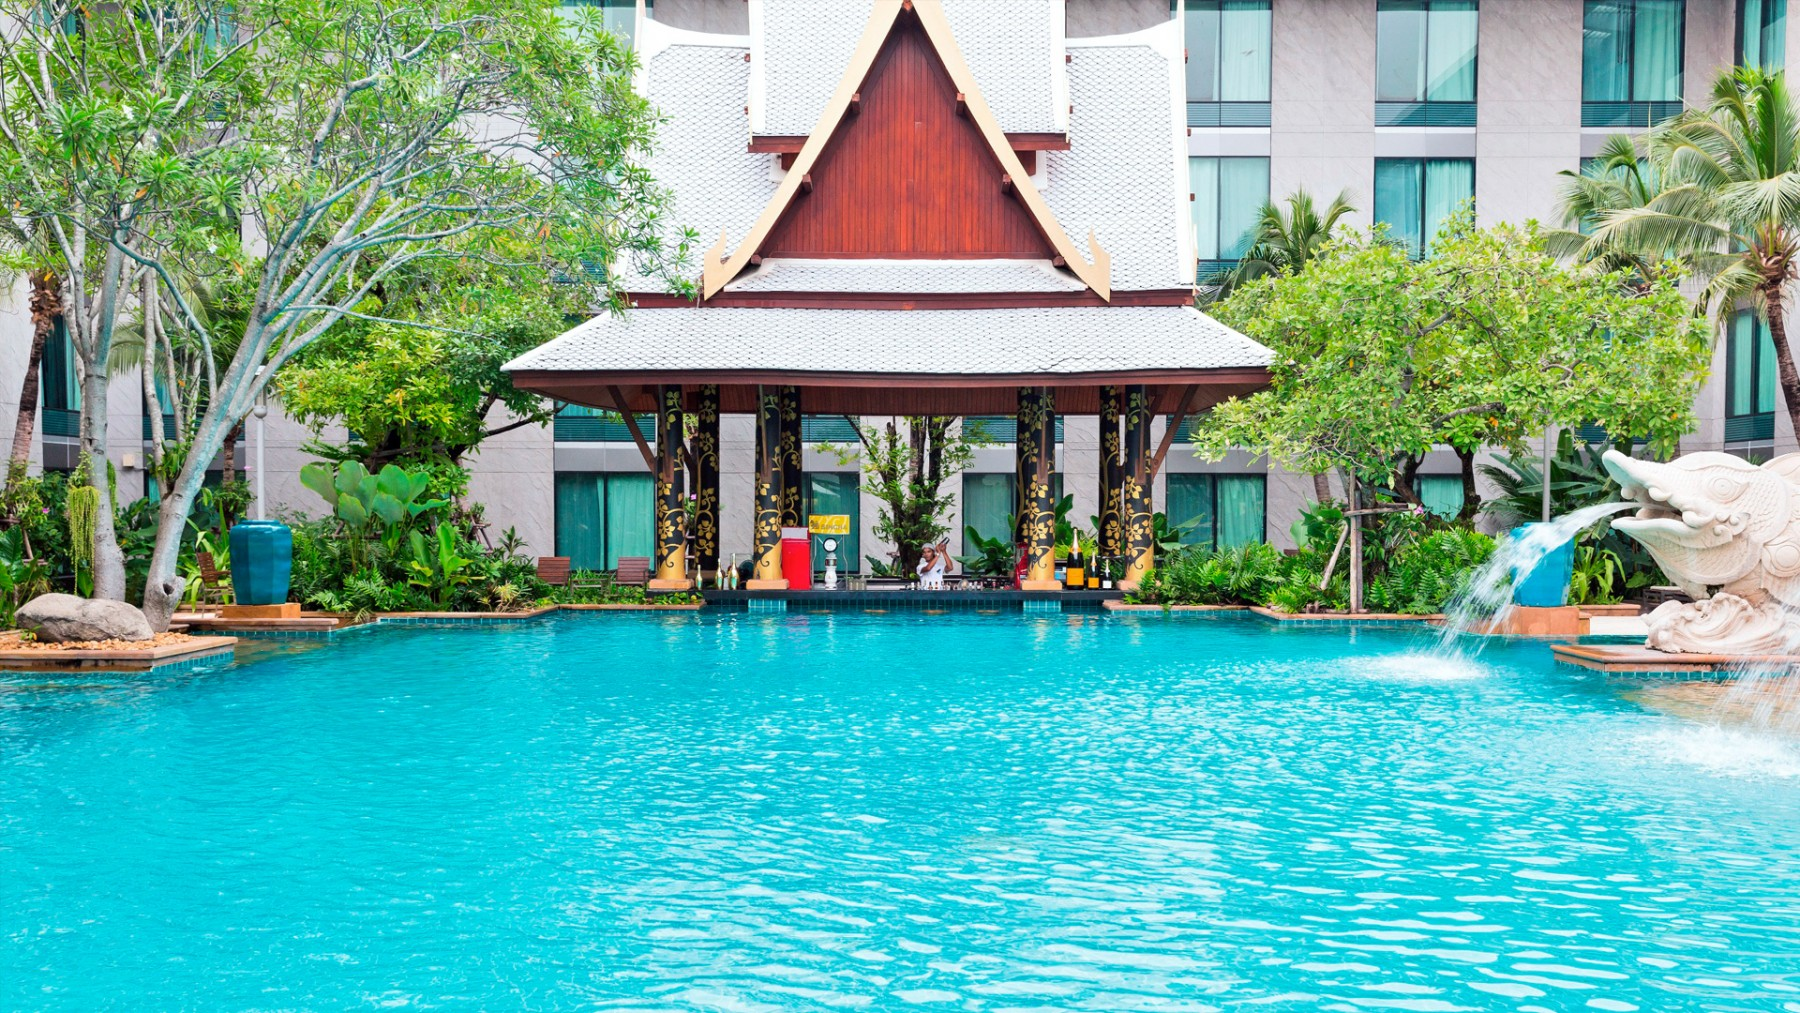 Novotel bangkok suvarnabhumi airport splash pool bar - Whitefish bay pool open swim hours ...